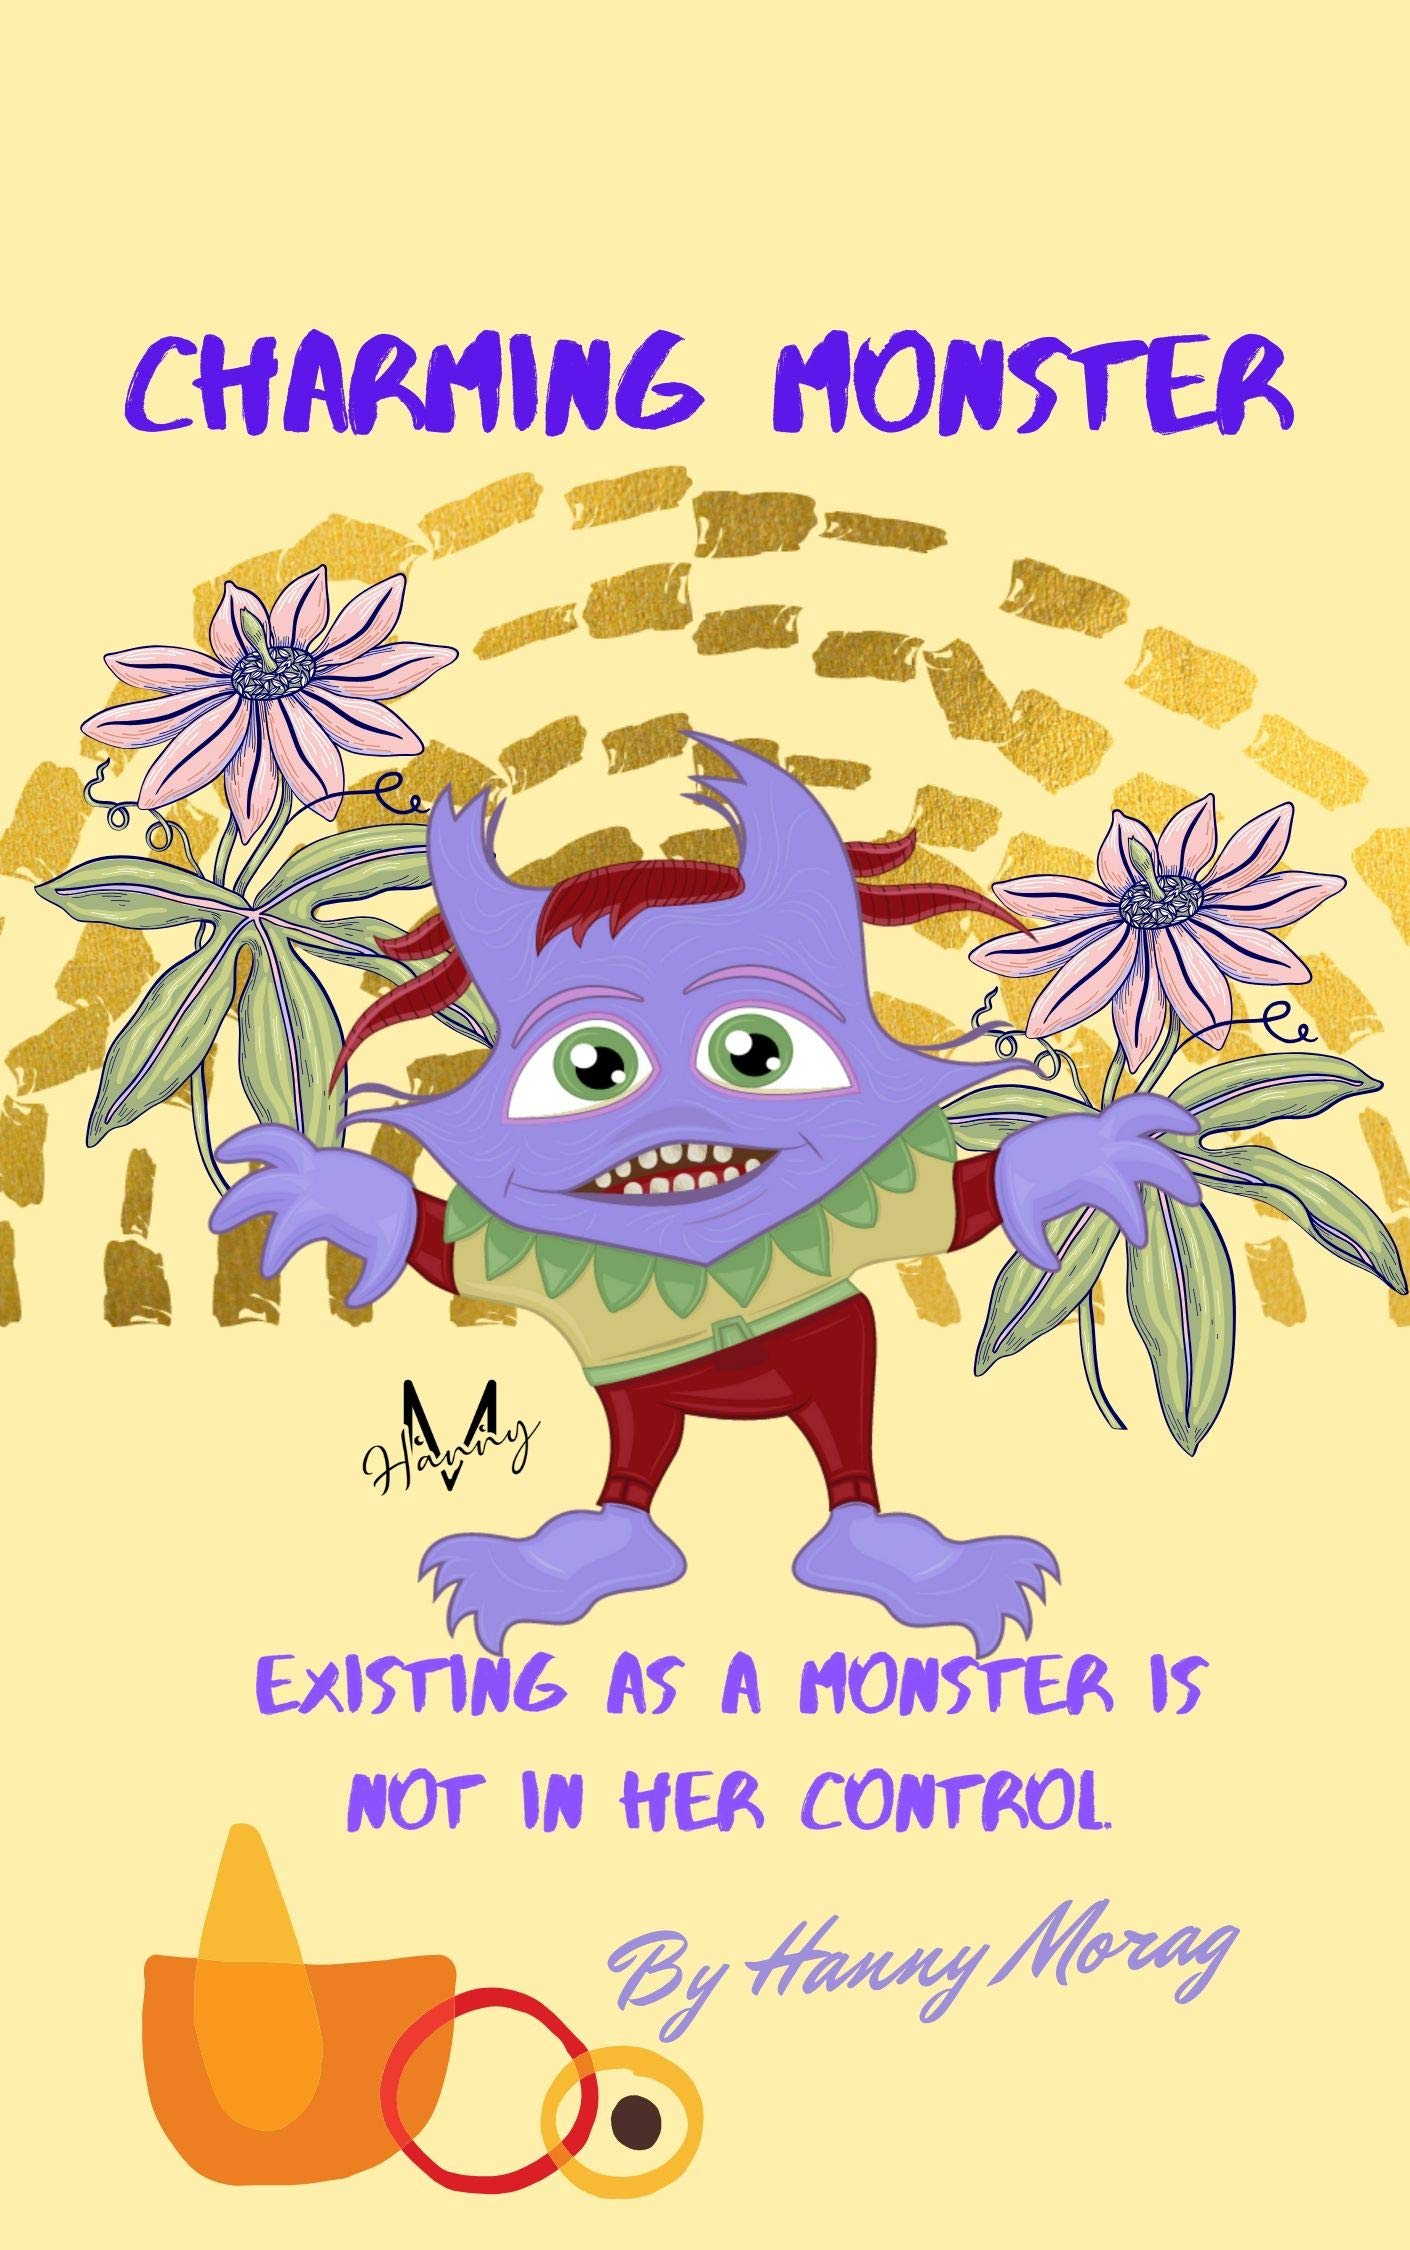 Charming Monster: Cute monster book, Educational children personal image books, bedtime stories for kids ages 3-8, illustrated fairy tales eBook for children,